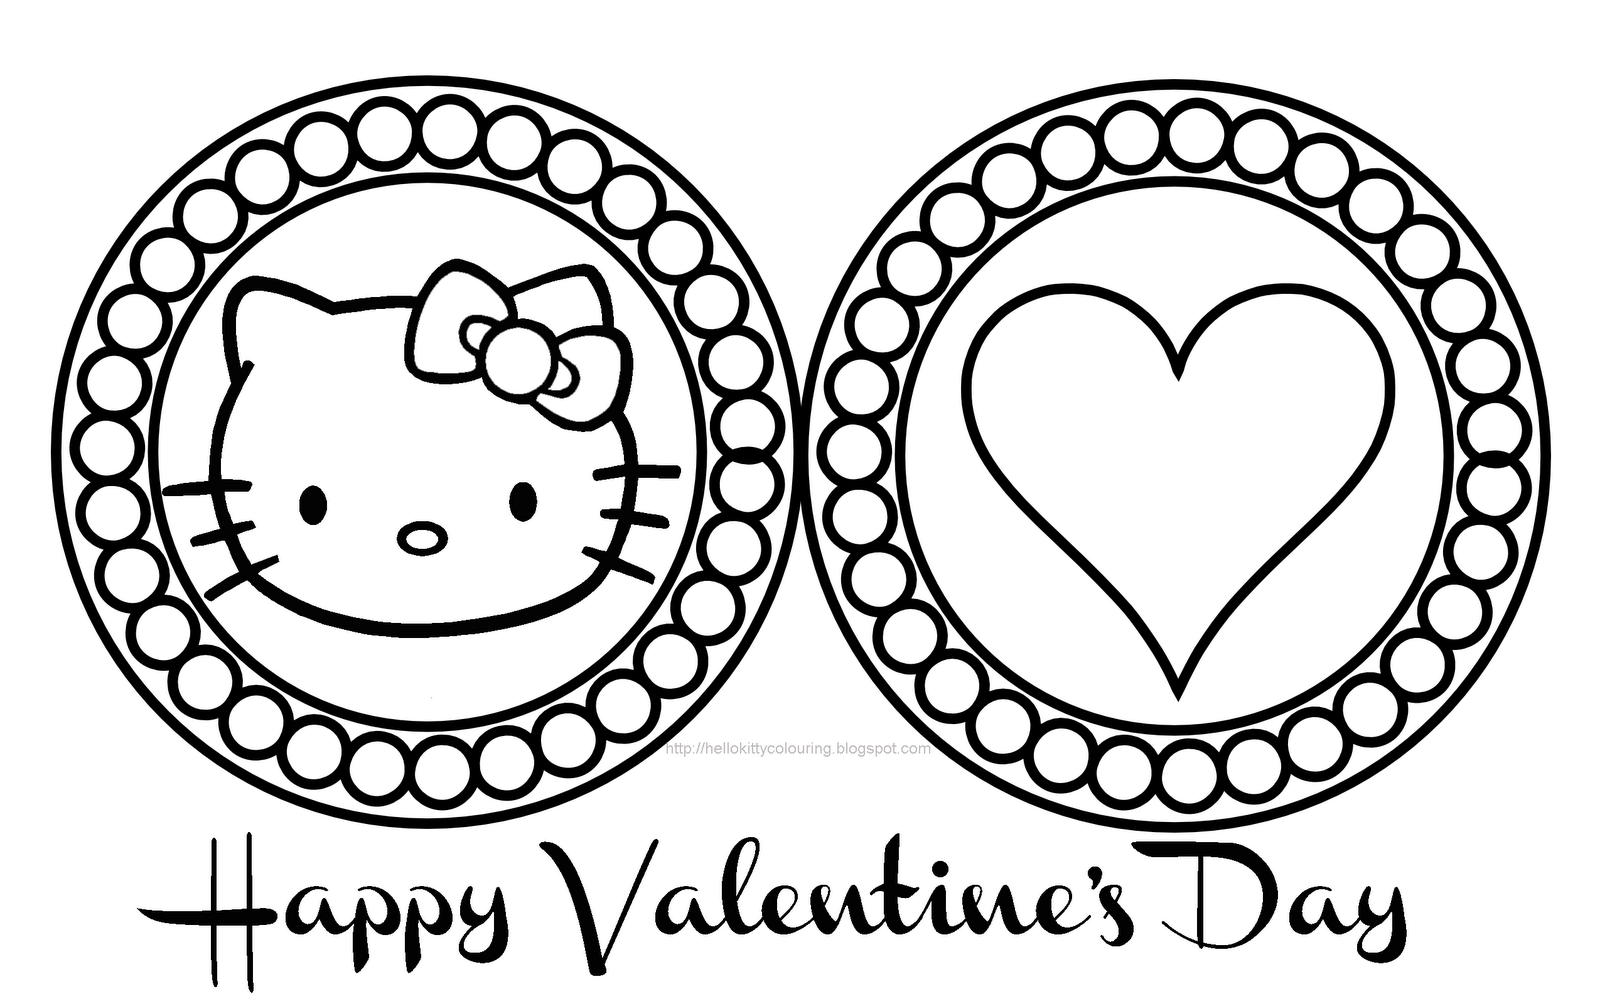 Coloring Pages For Valentines Day Hello Kitty : Hello kitty valentines day coloring pages